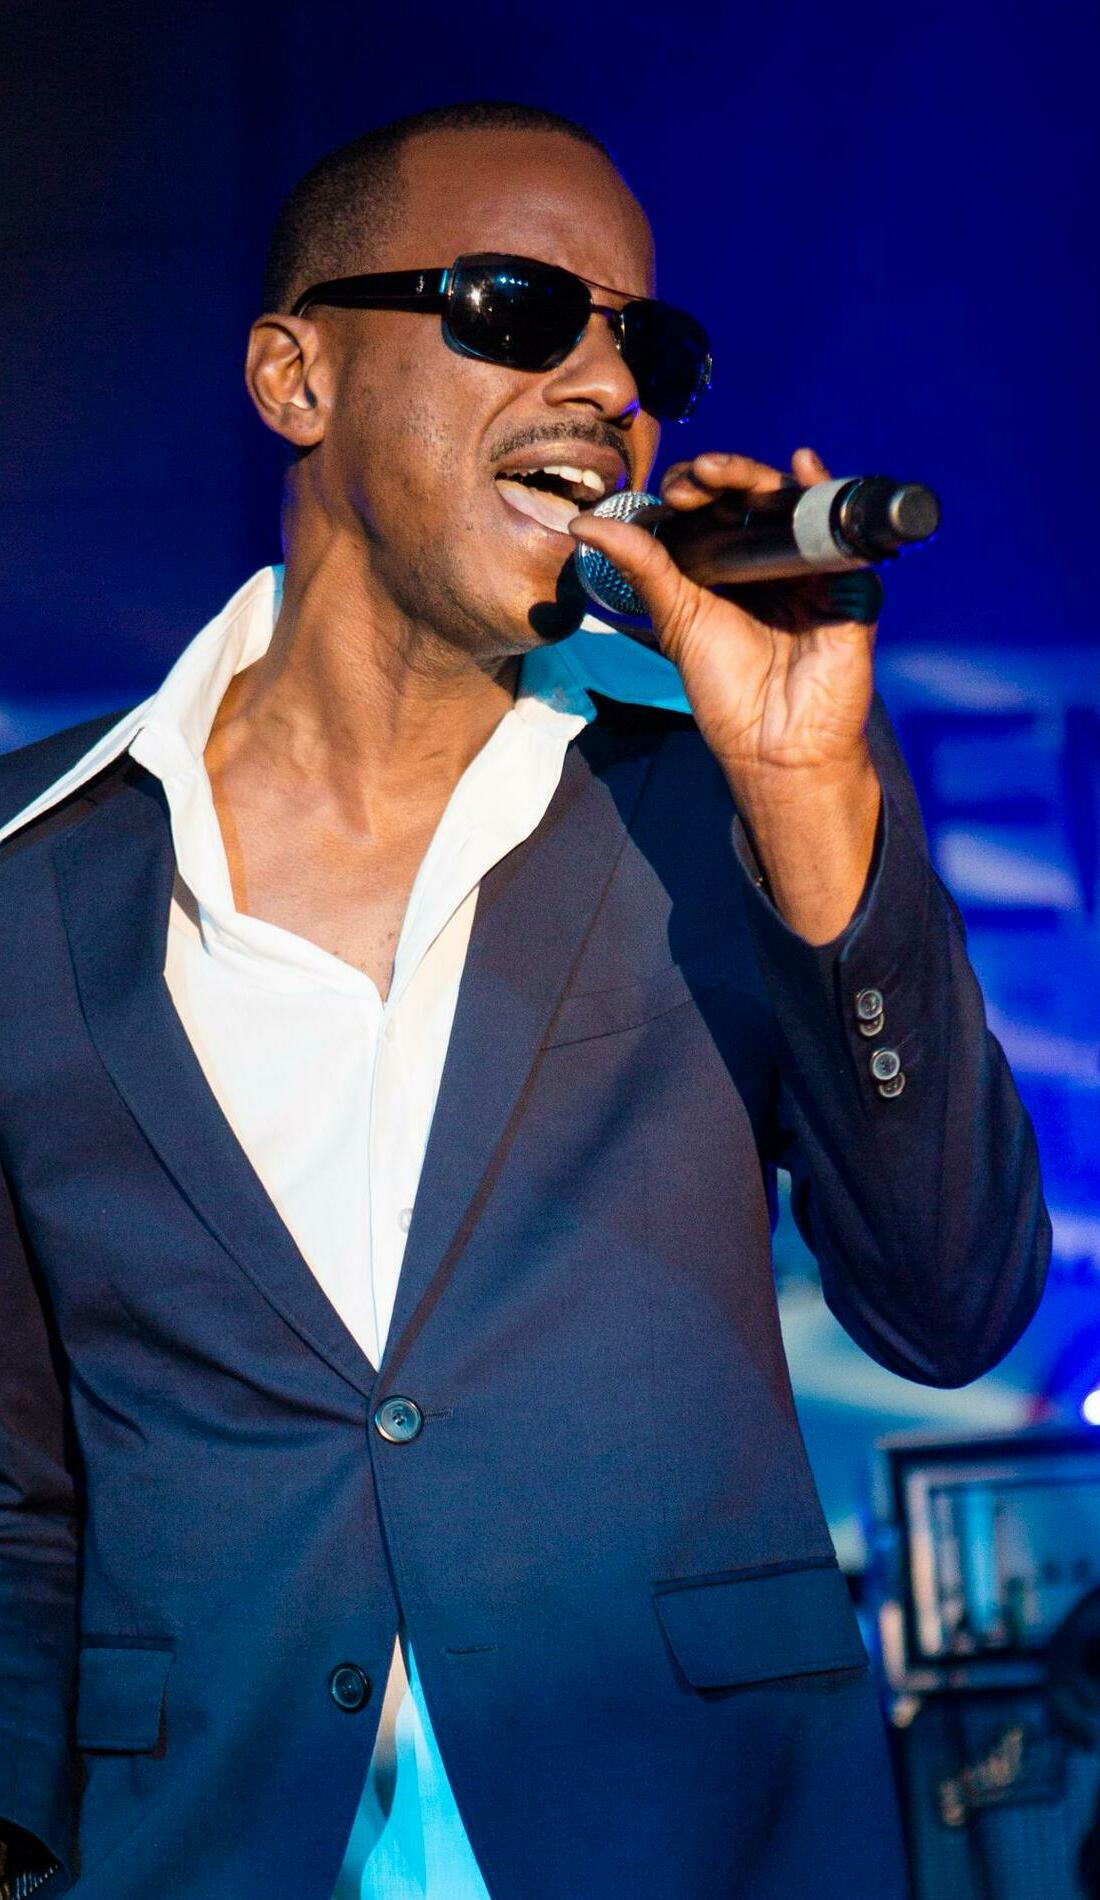 A Tevin Campbell live event